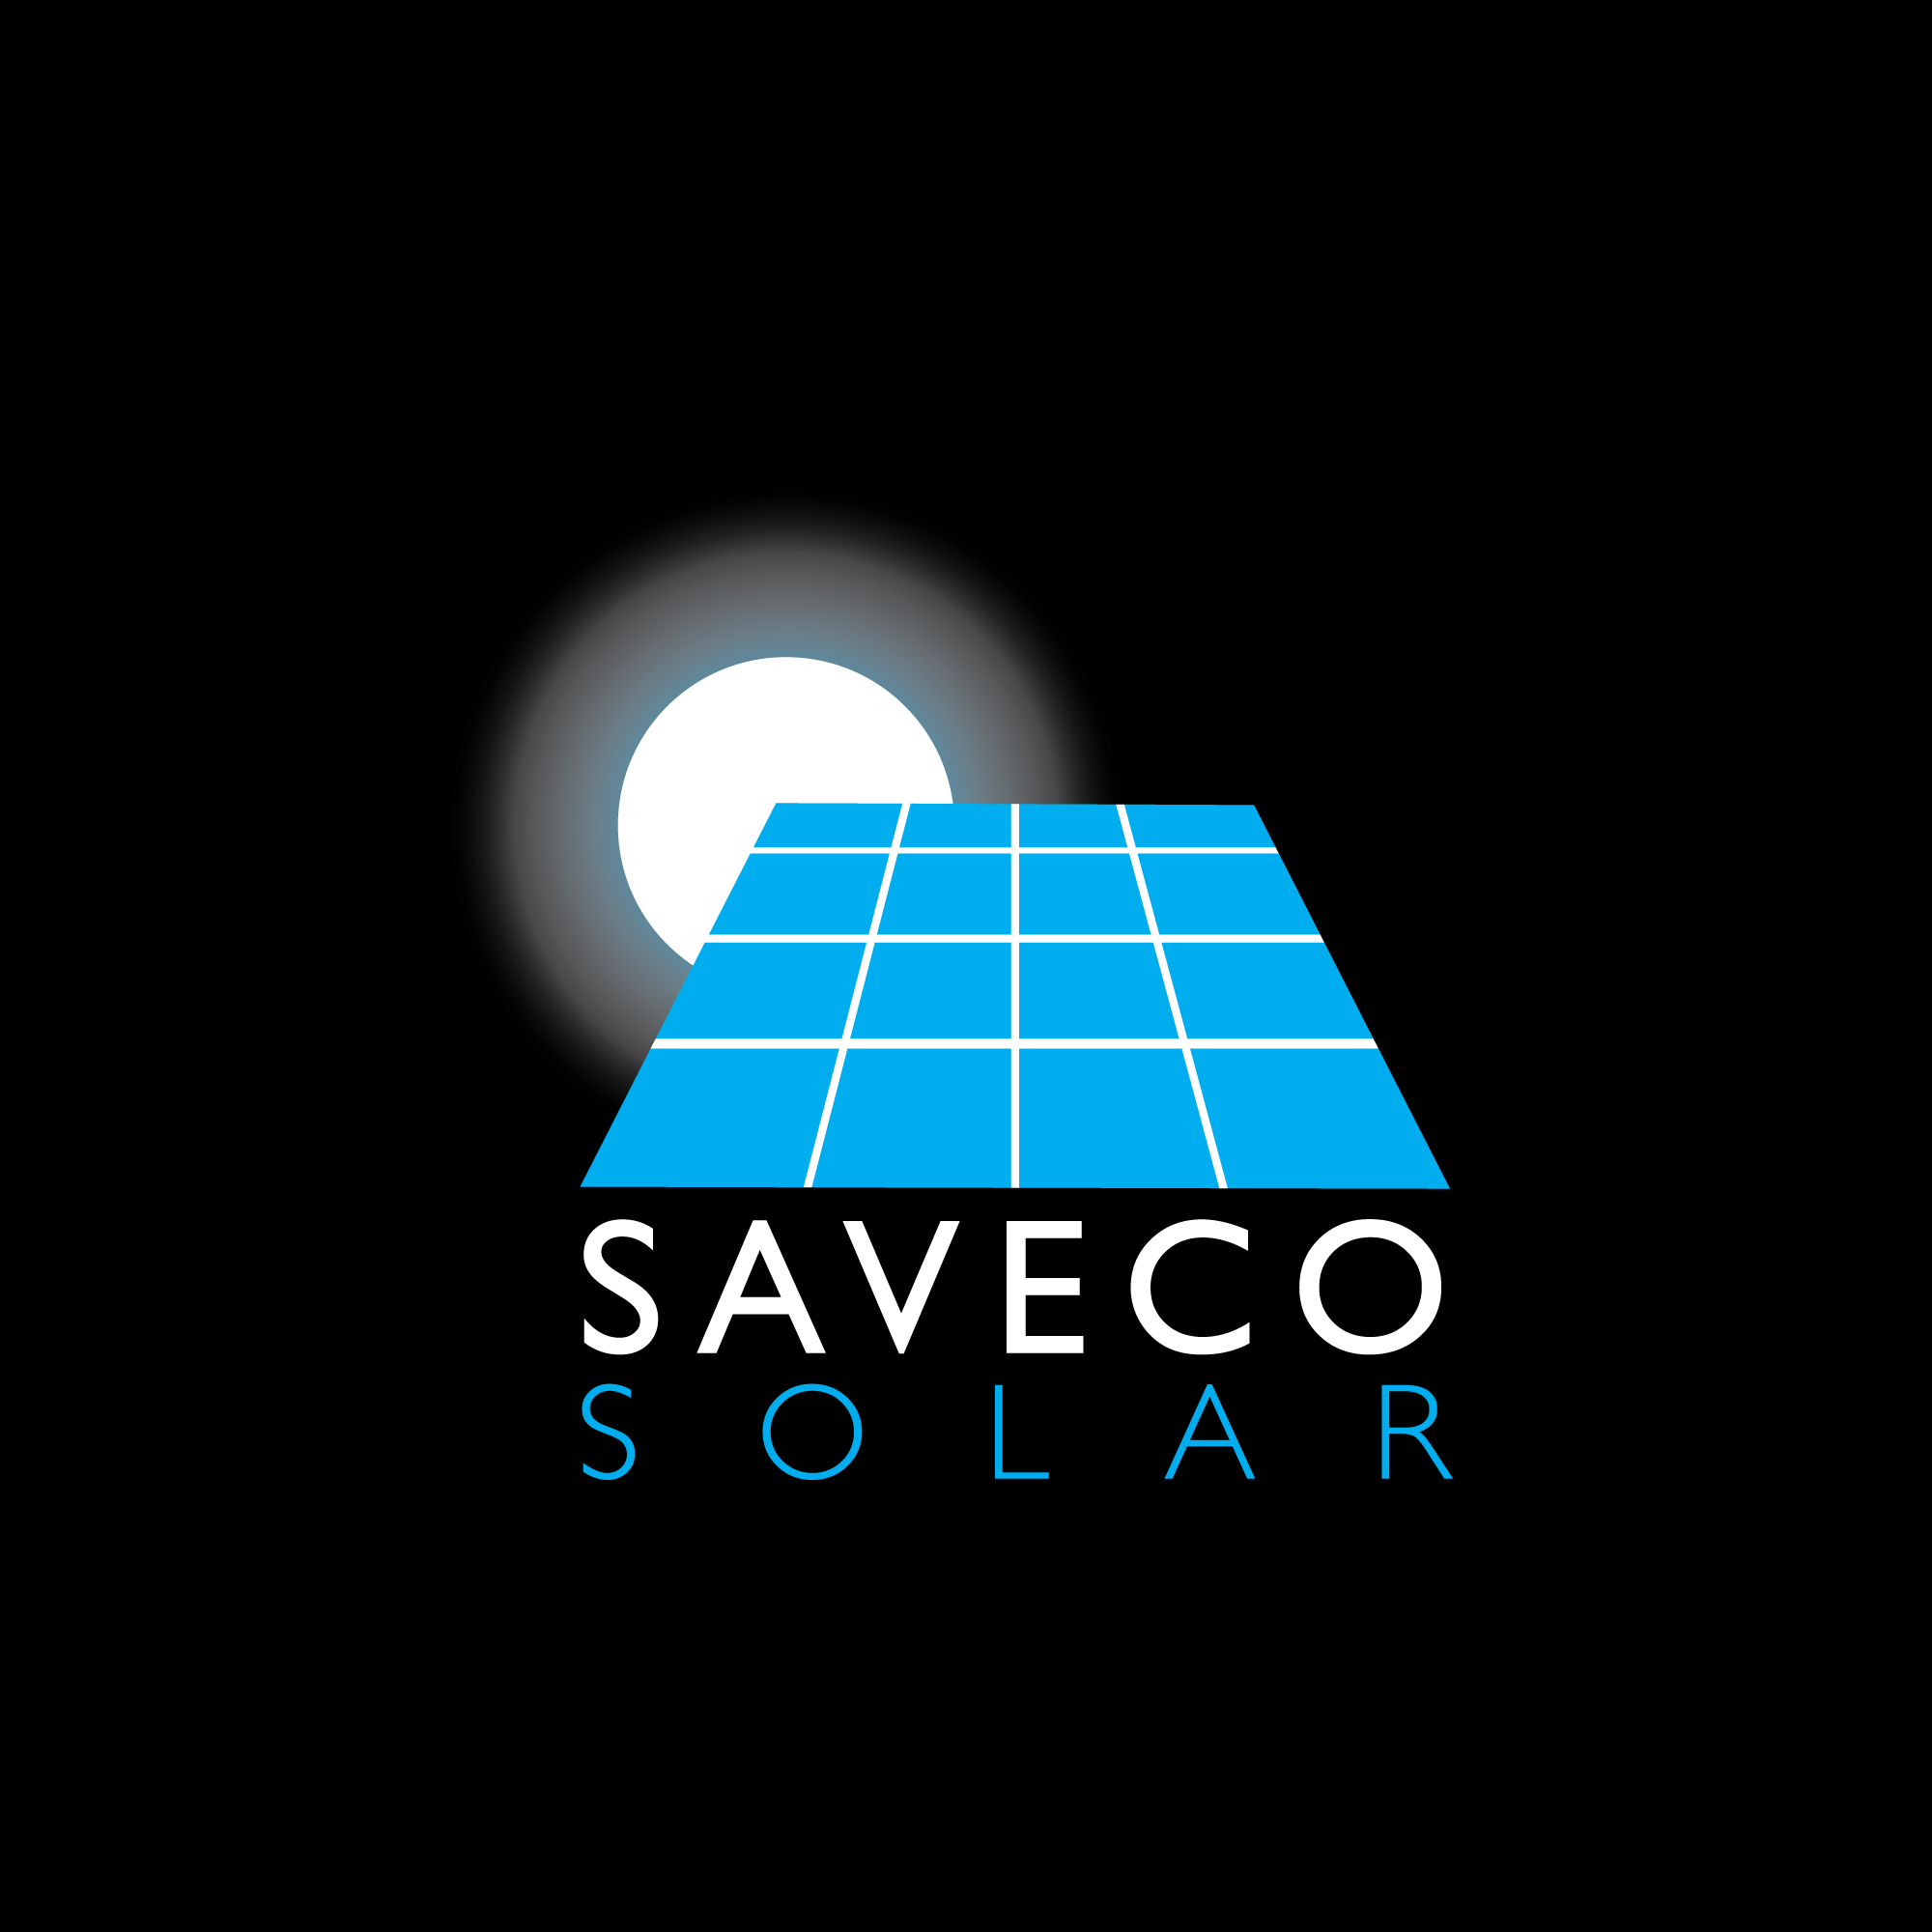 Saveco Solar Offers Full Solar Panel Services for Little to No Upfront Cost